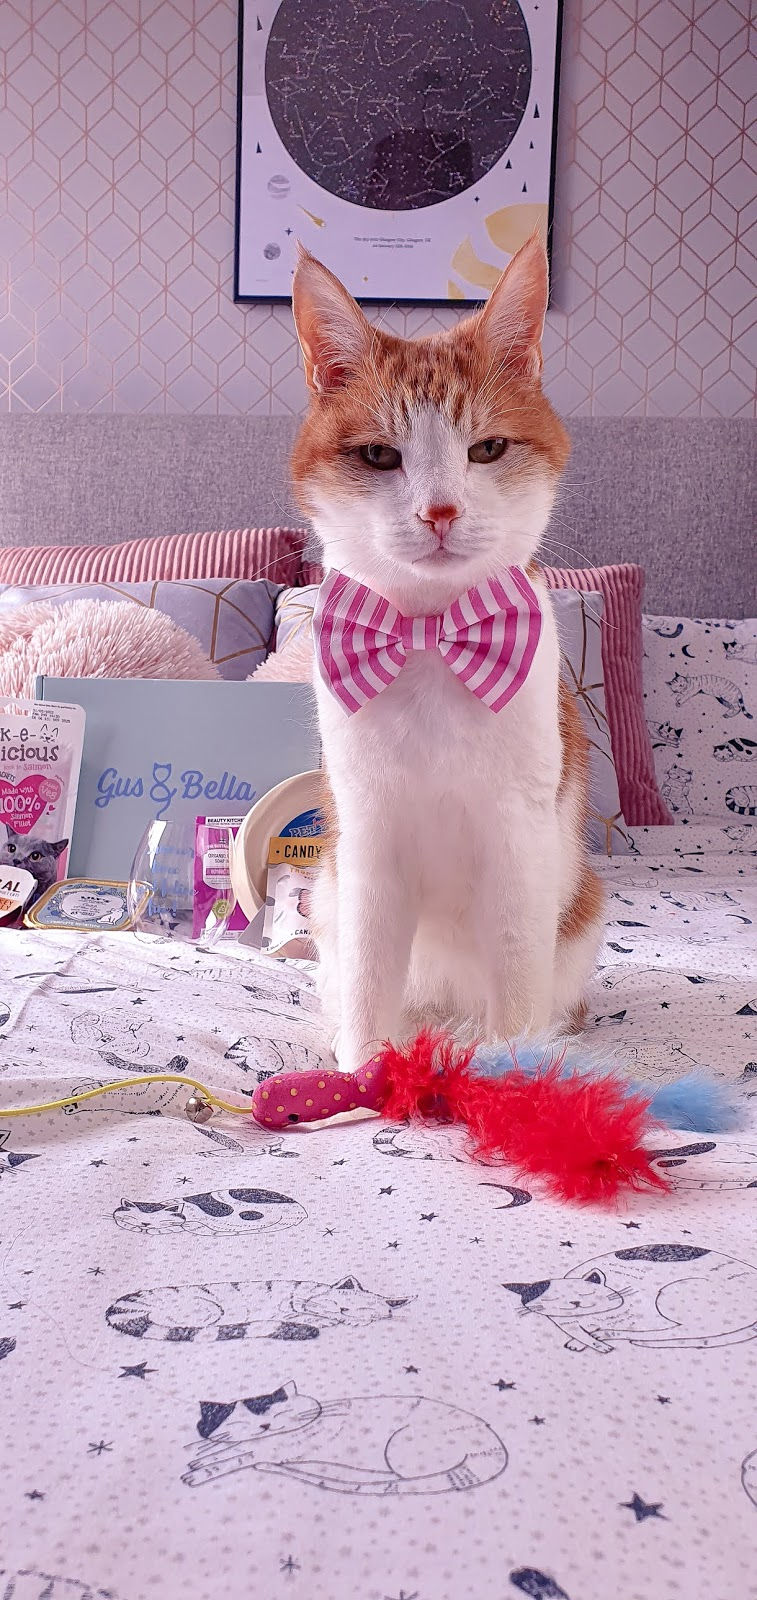 close up of Teddy, a ginger and white cat sitting on a bed with a pink bowtie on